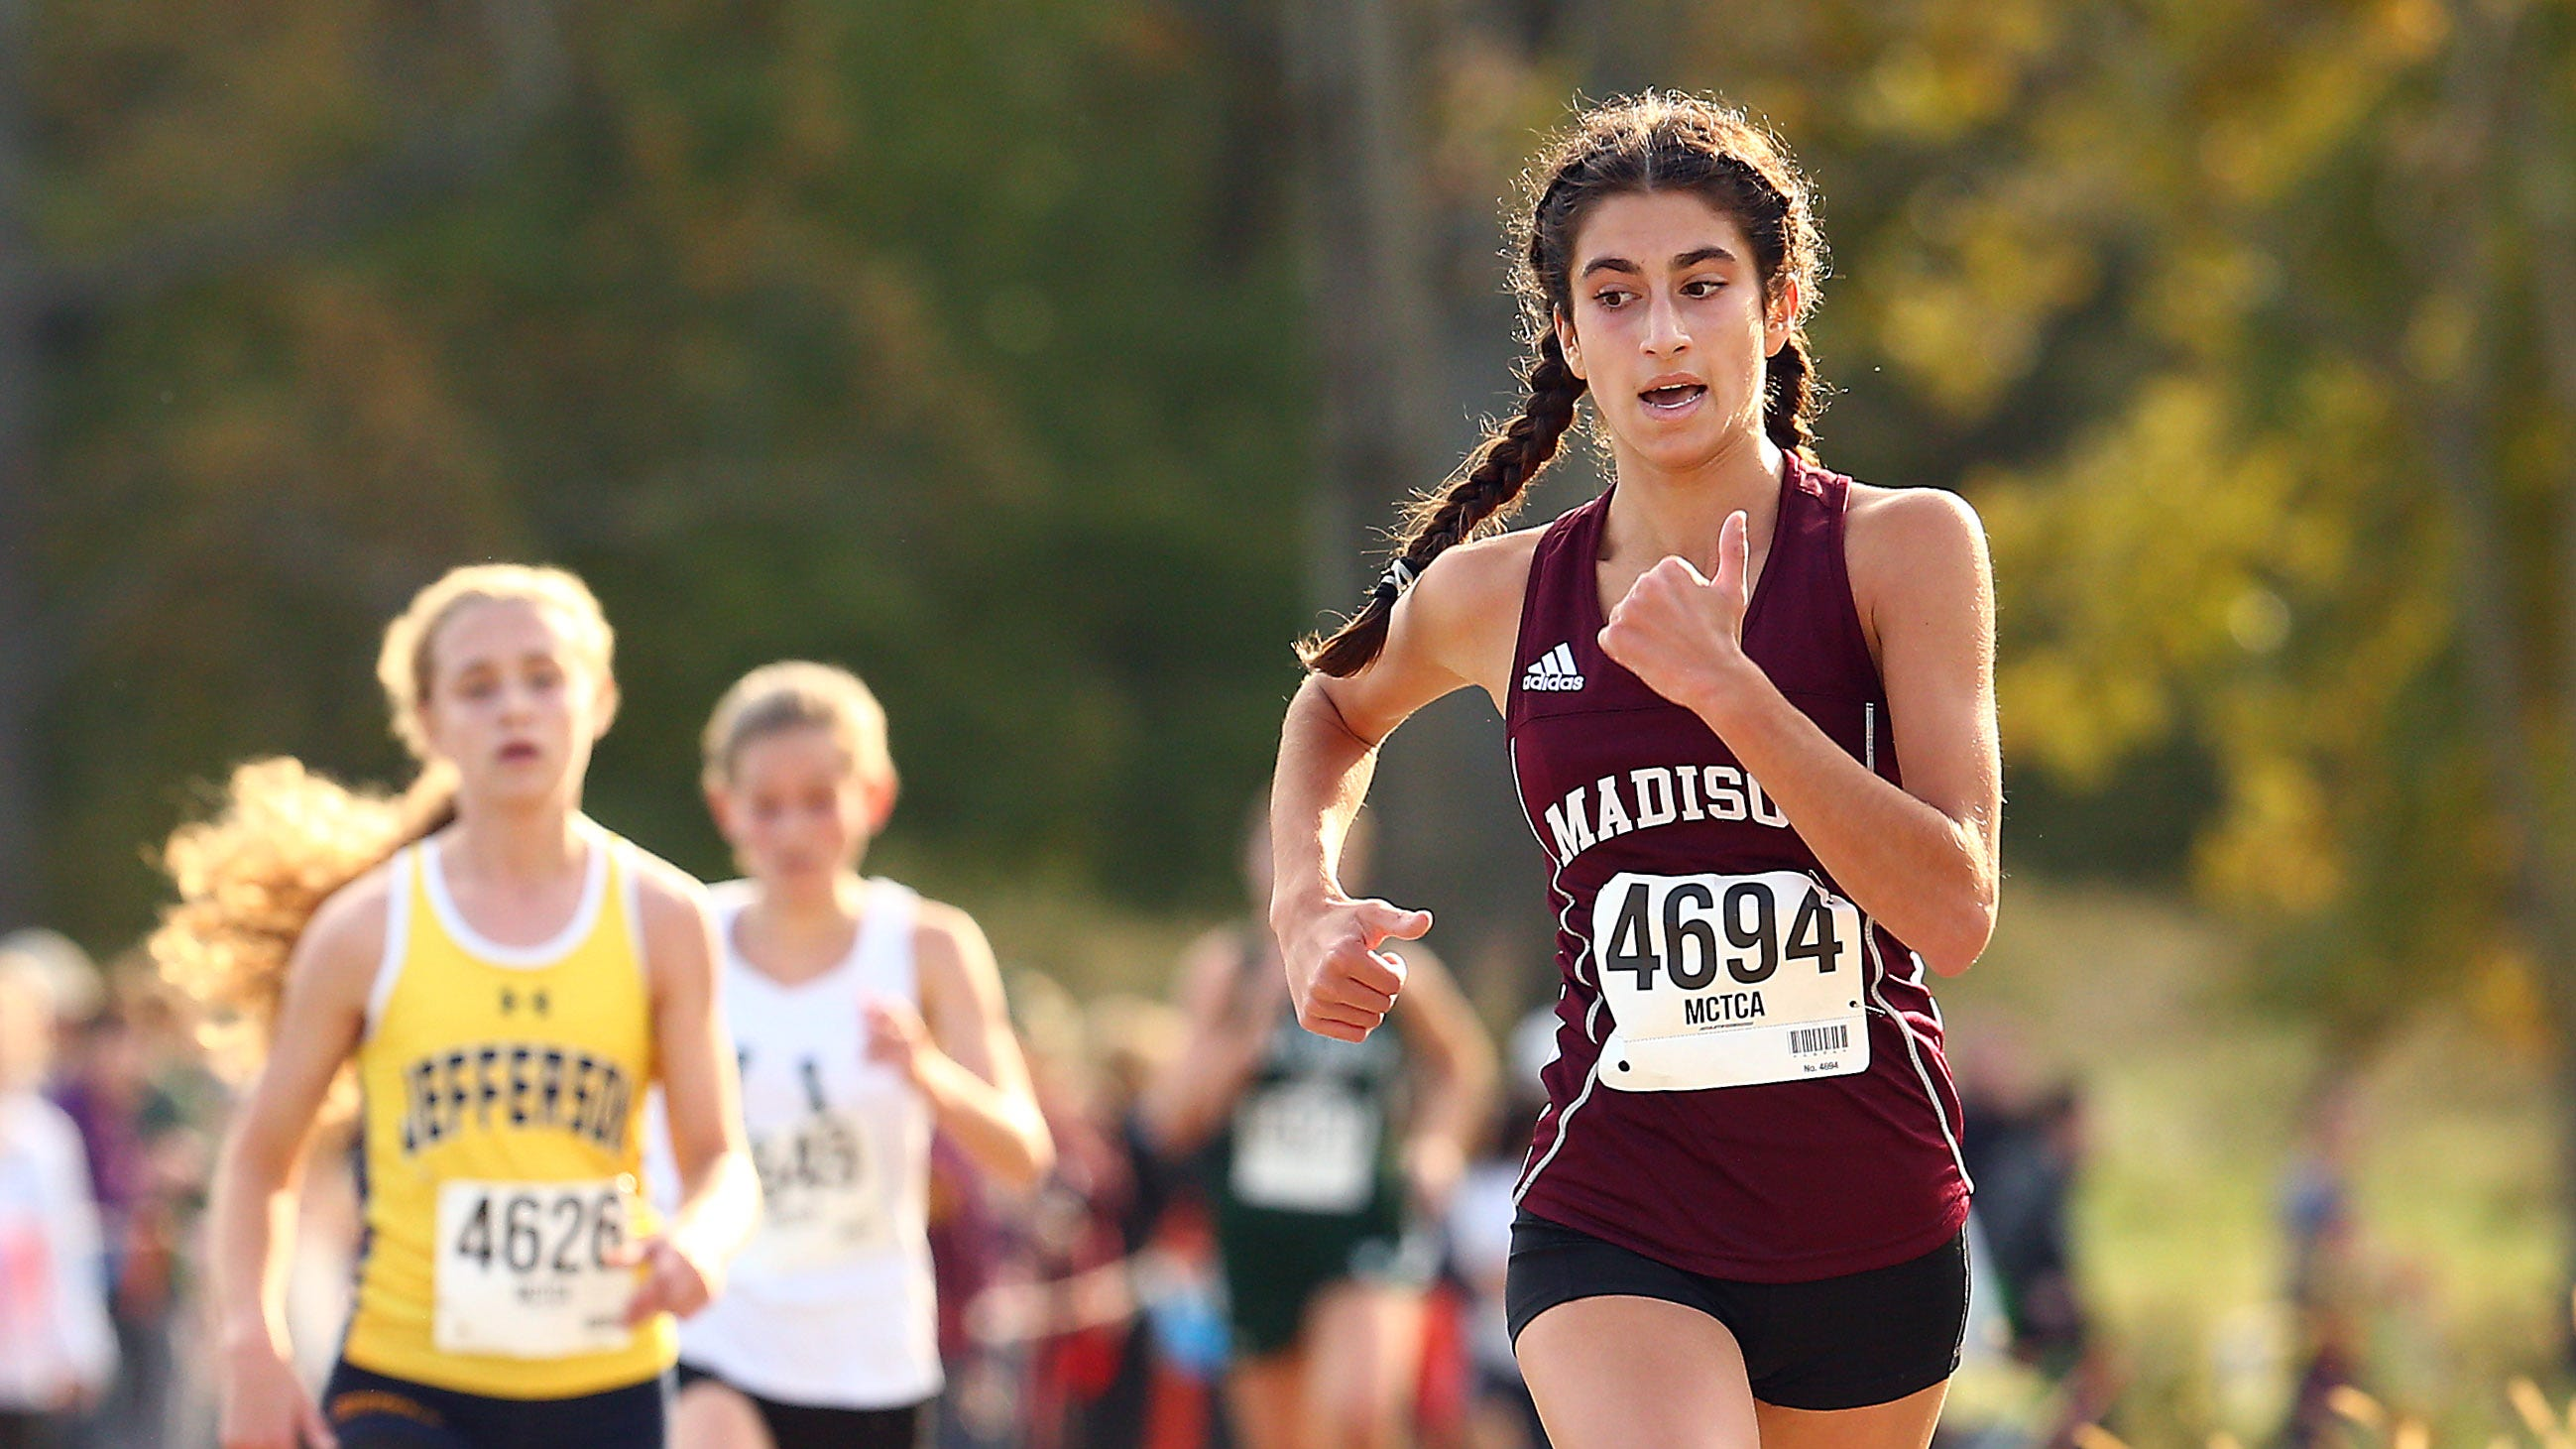 Madison sophomore Jamie Habib heads to the finish during the Morris County girls cross country championships at Central Park of Morris County. October 23, 2018, Morris Plains, NJ